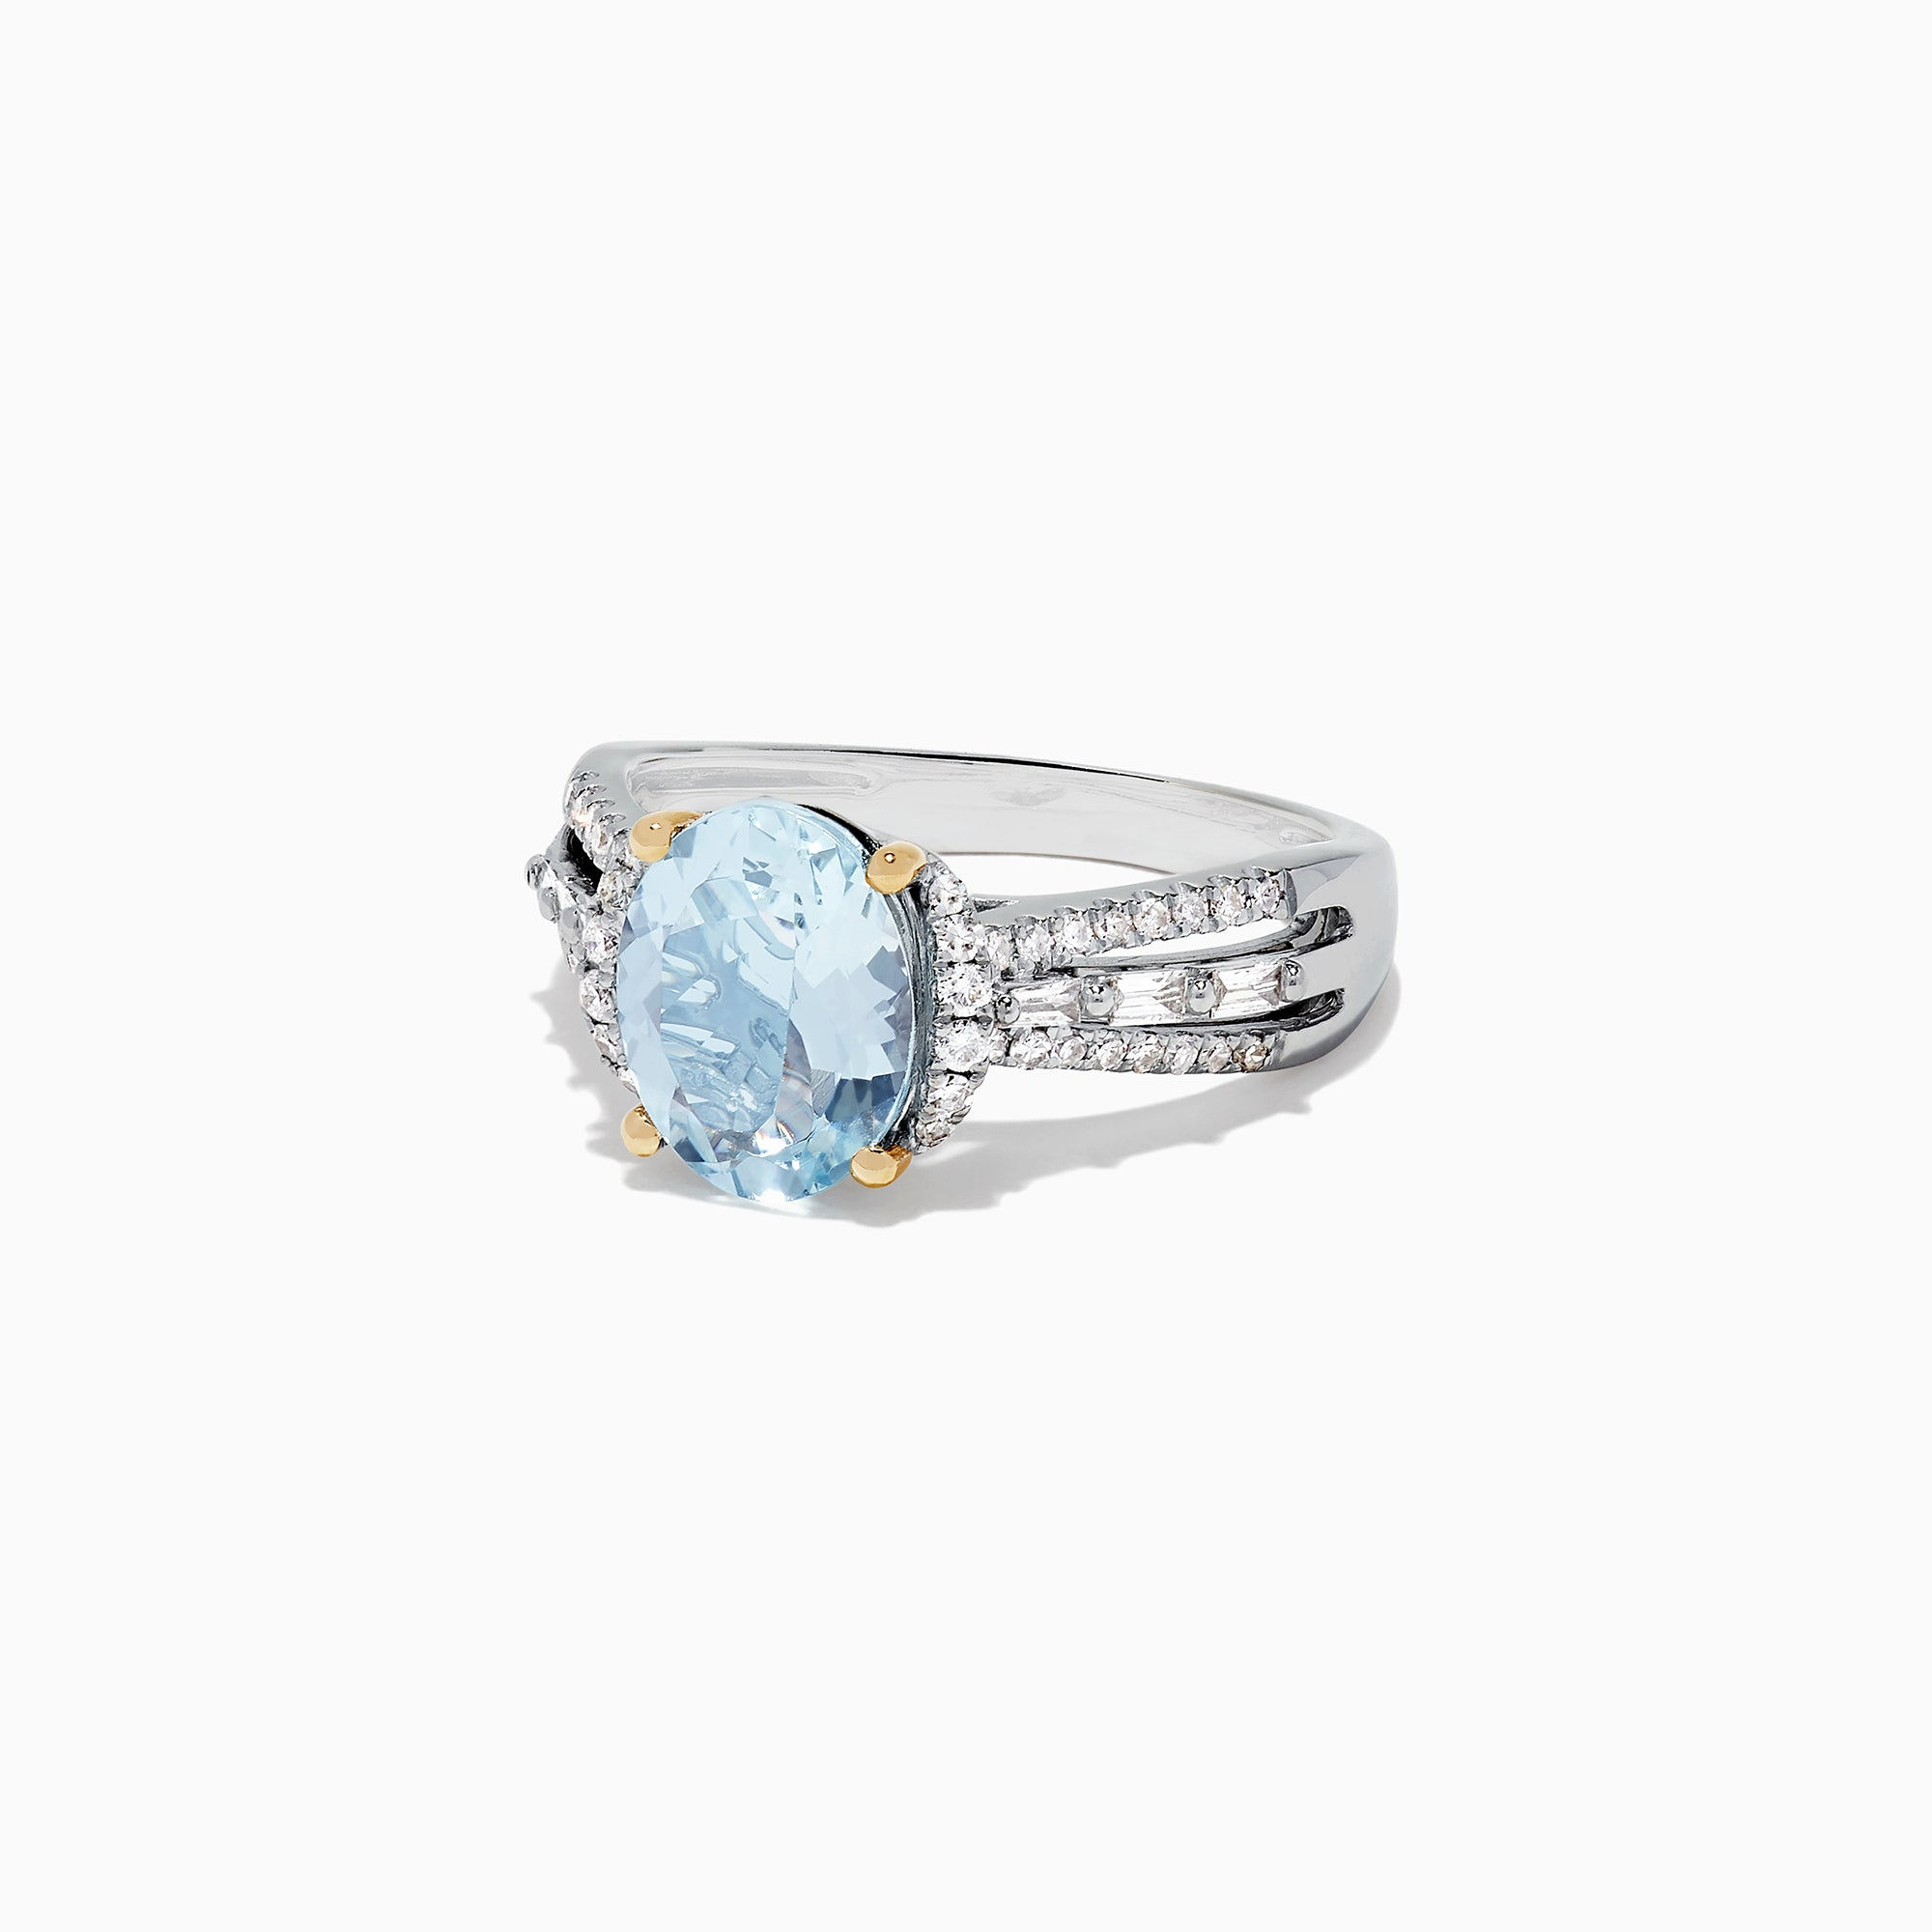 Effy Aquarius 14K White Gold Aquamarine and Diamond Ring, 2.56 TCW